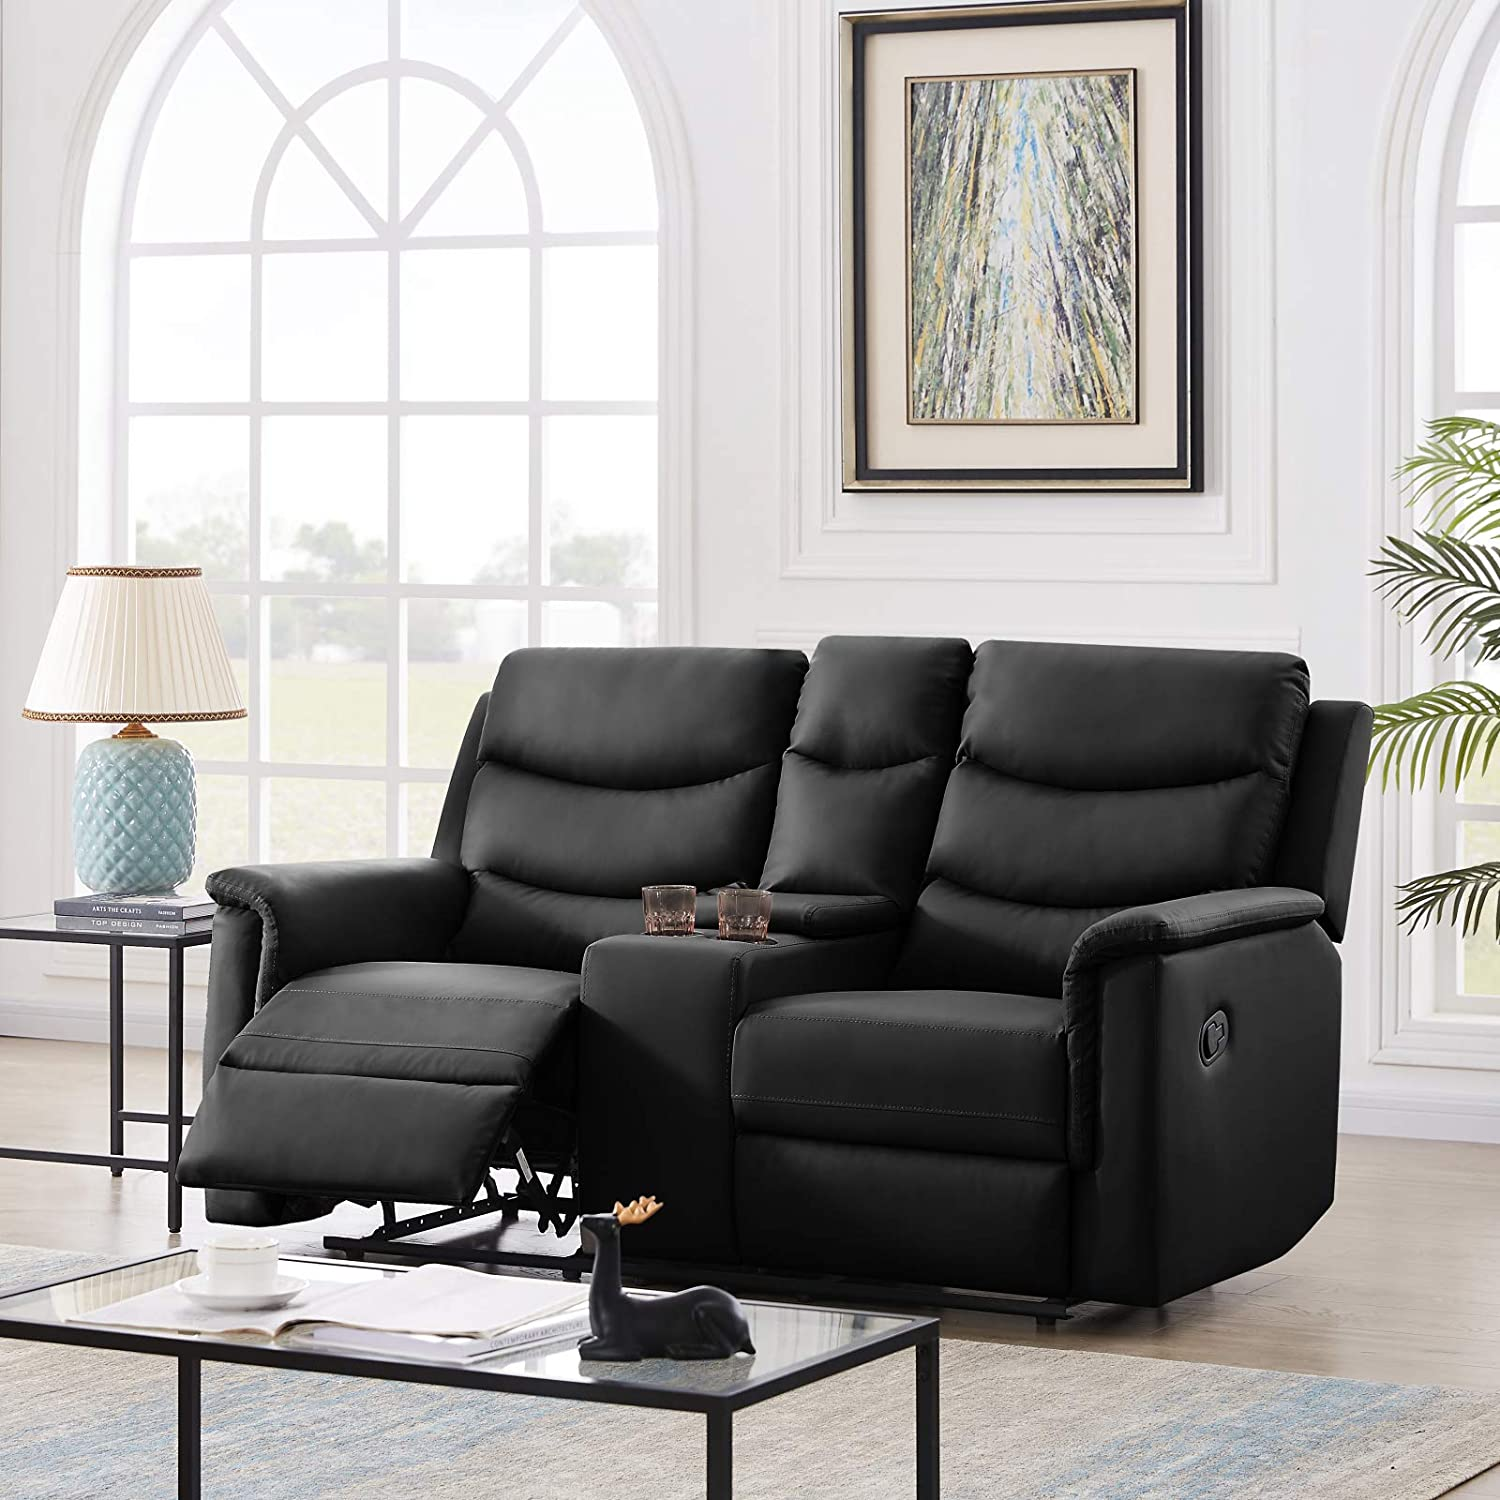 Recliner Lowest price challenge Chair PU Leather Sofa Living Room Cha Loveseat Raleigh Mall